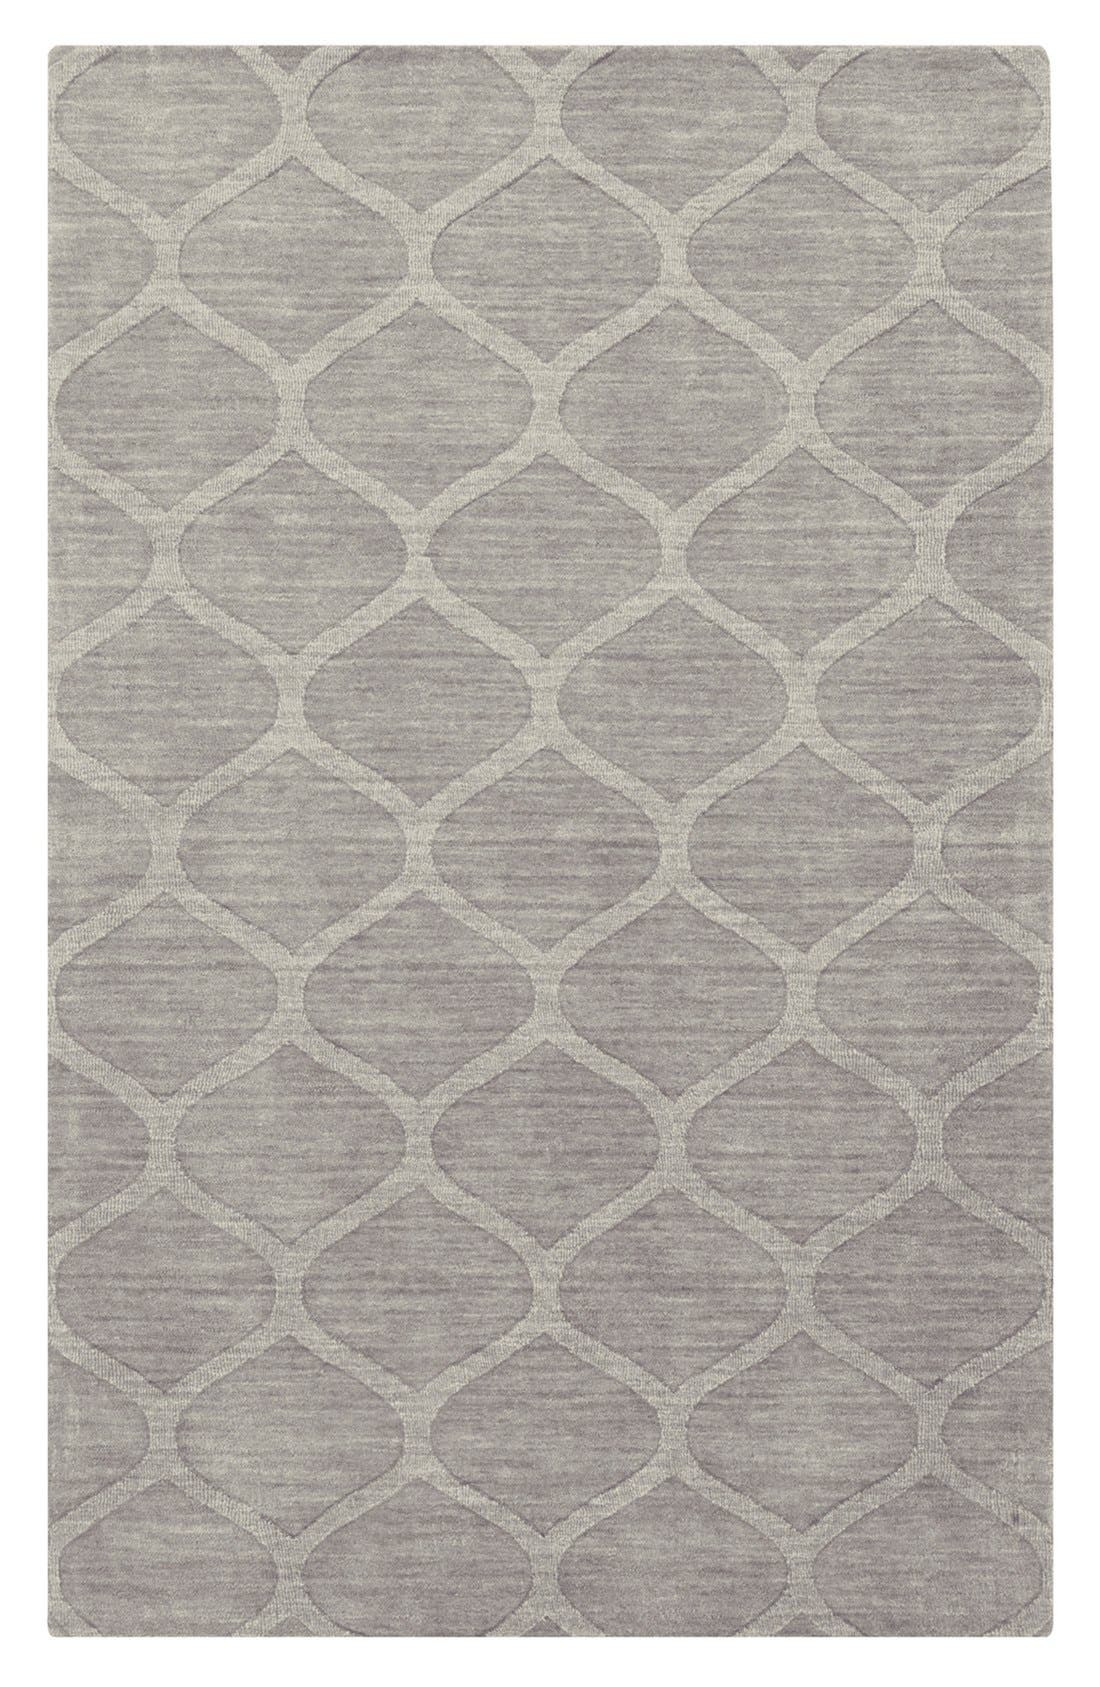 'Mystique' Hand Loomed Wool Rug,                             Main thumbnail 1, color,                             Grey